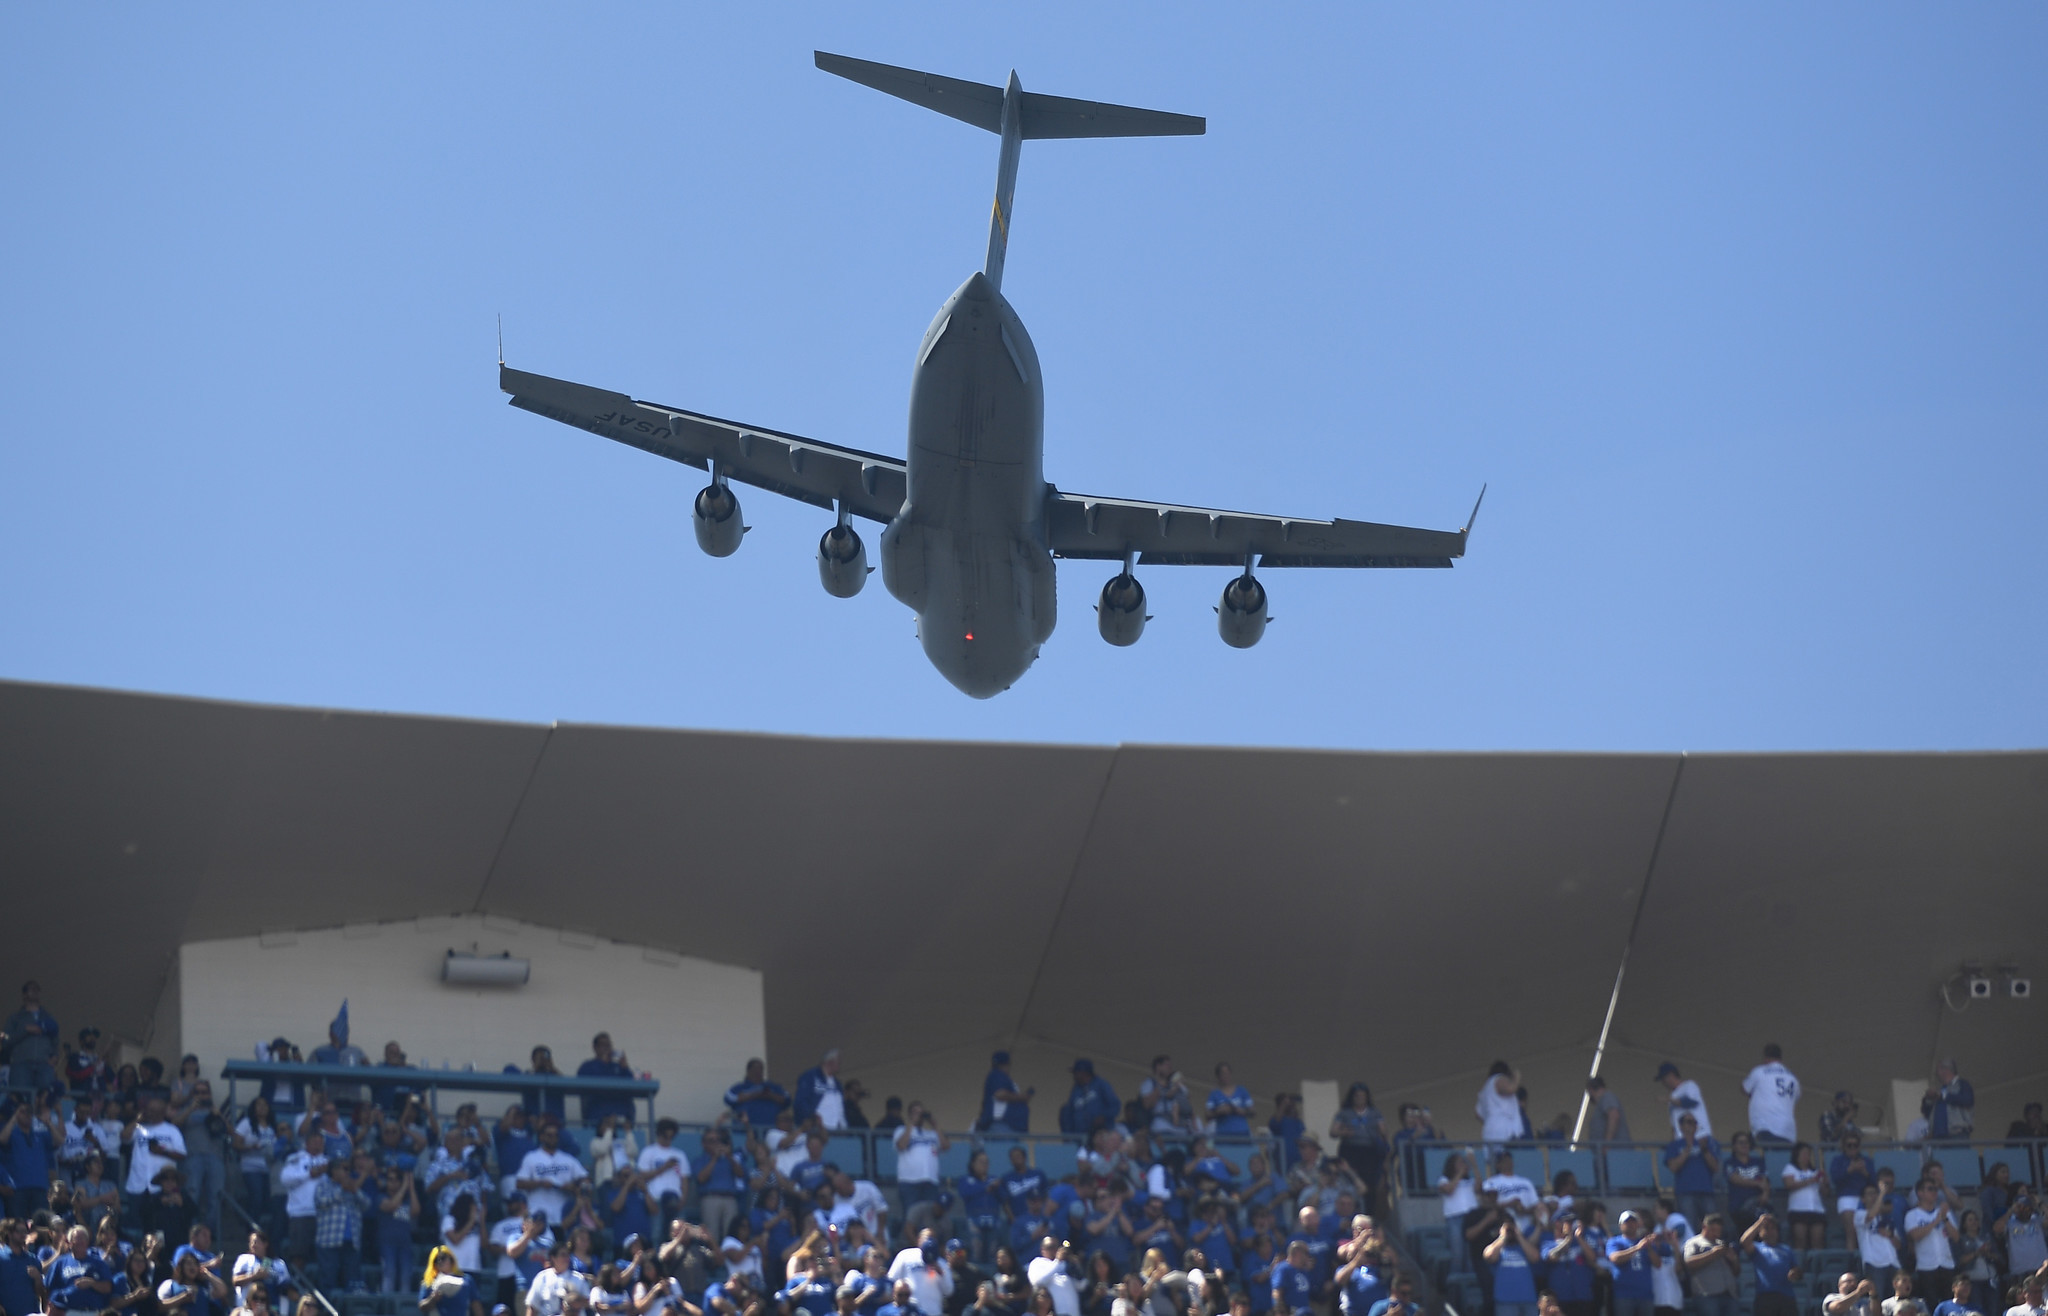 LOS ANGELES, CALIFORNIA MARCH 25, 2019-A military plane flies over Dodger Stadium during opening day